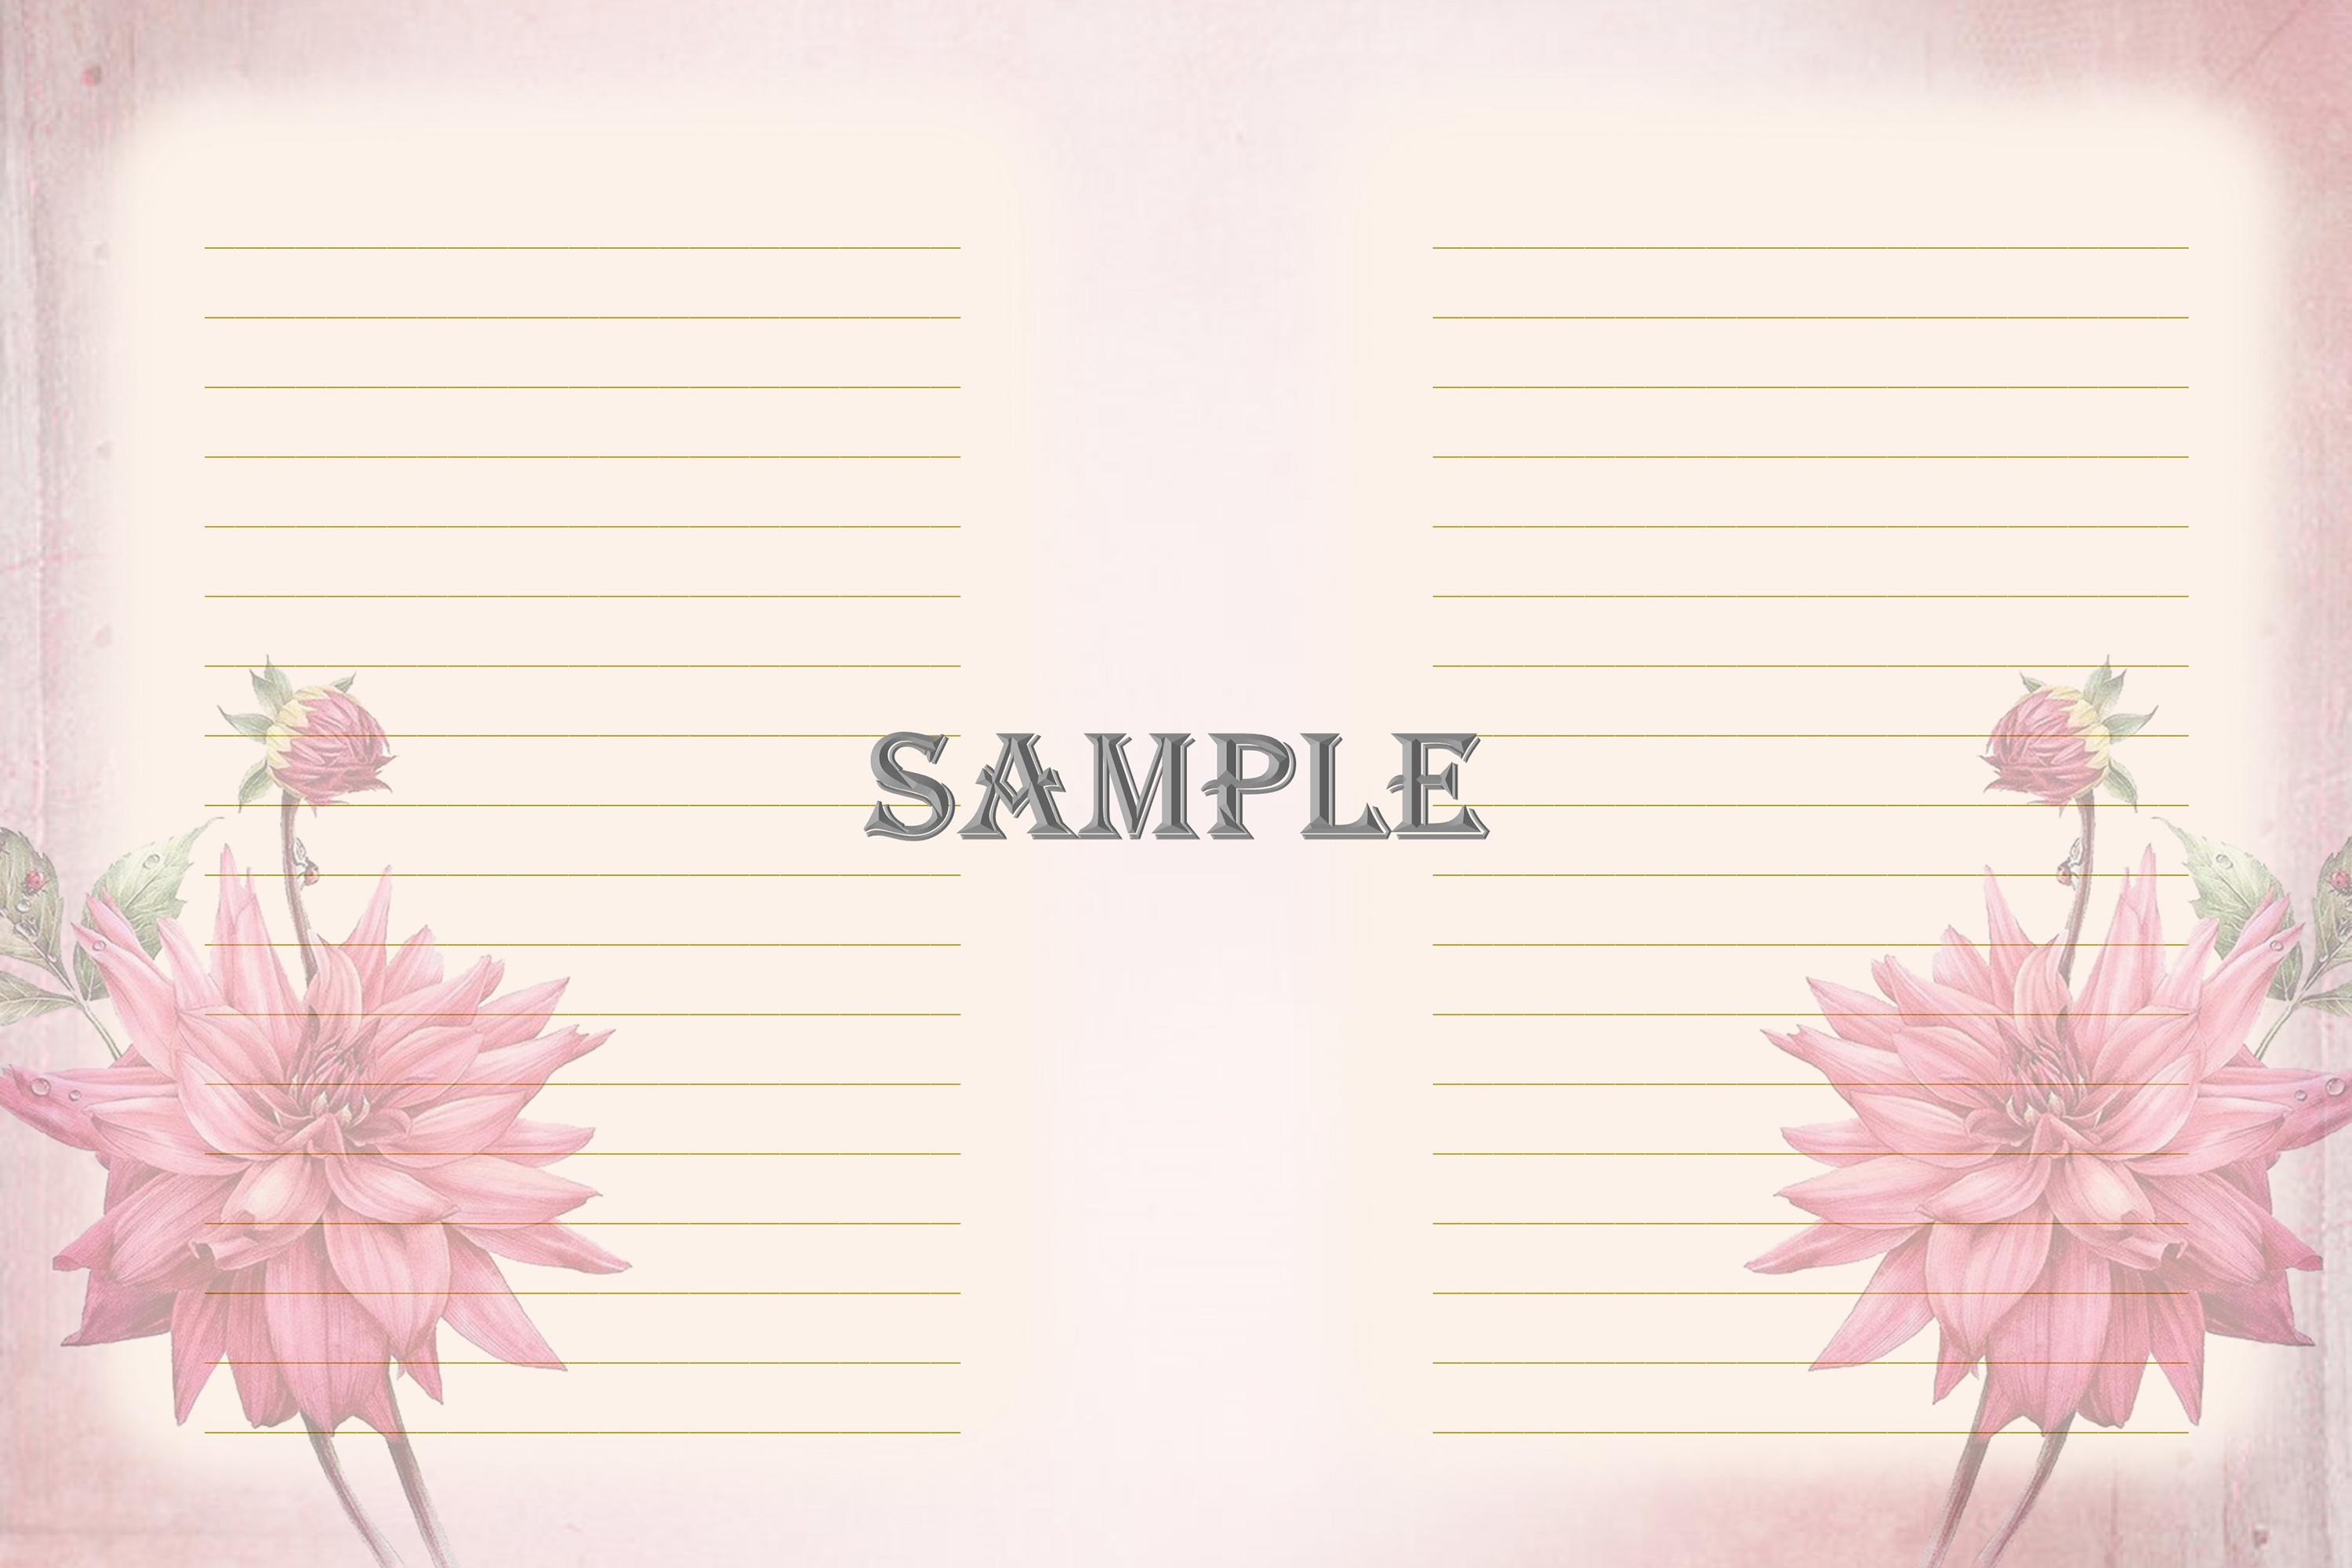 Vintage Ladies Backgrounds, Collage or Journal Sheets, A4 example image 7